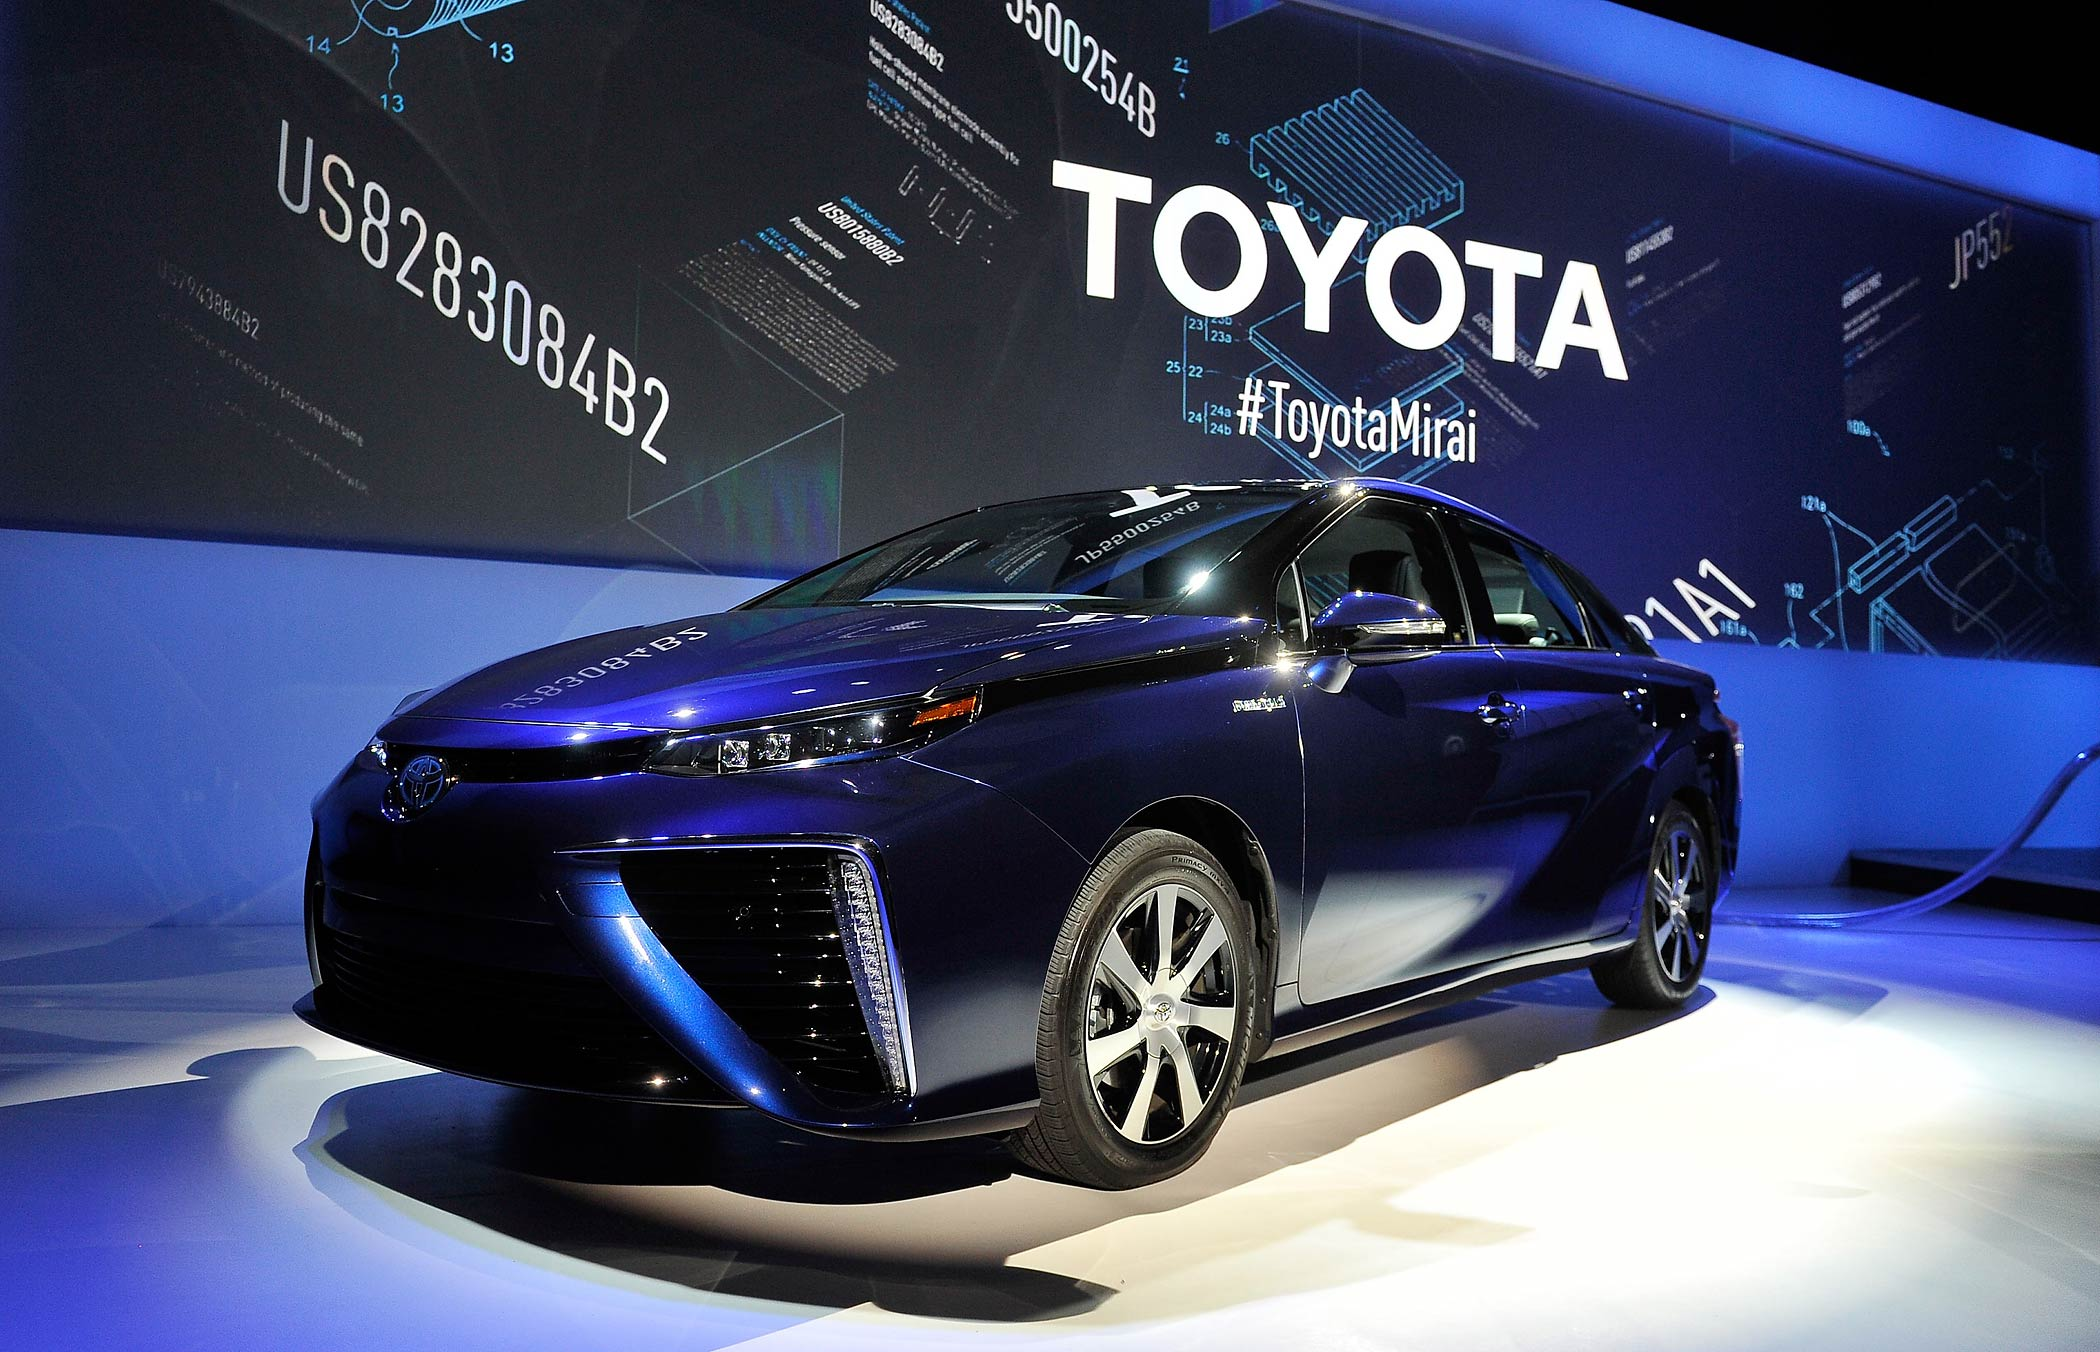 The Toyota Mirai is displayed at the 2015 International CES on January 5, 2015 in Las Vegas, Nevada.